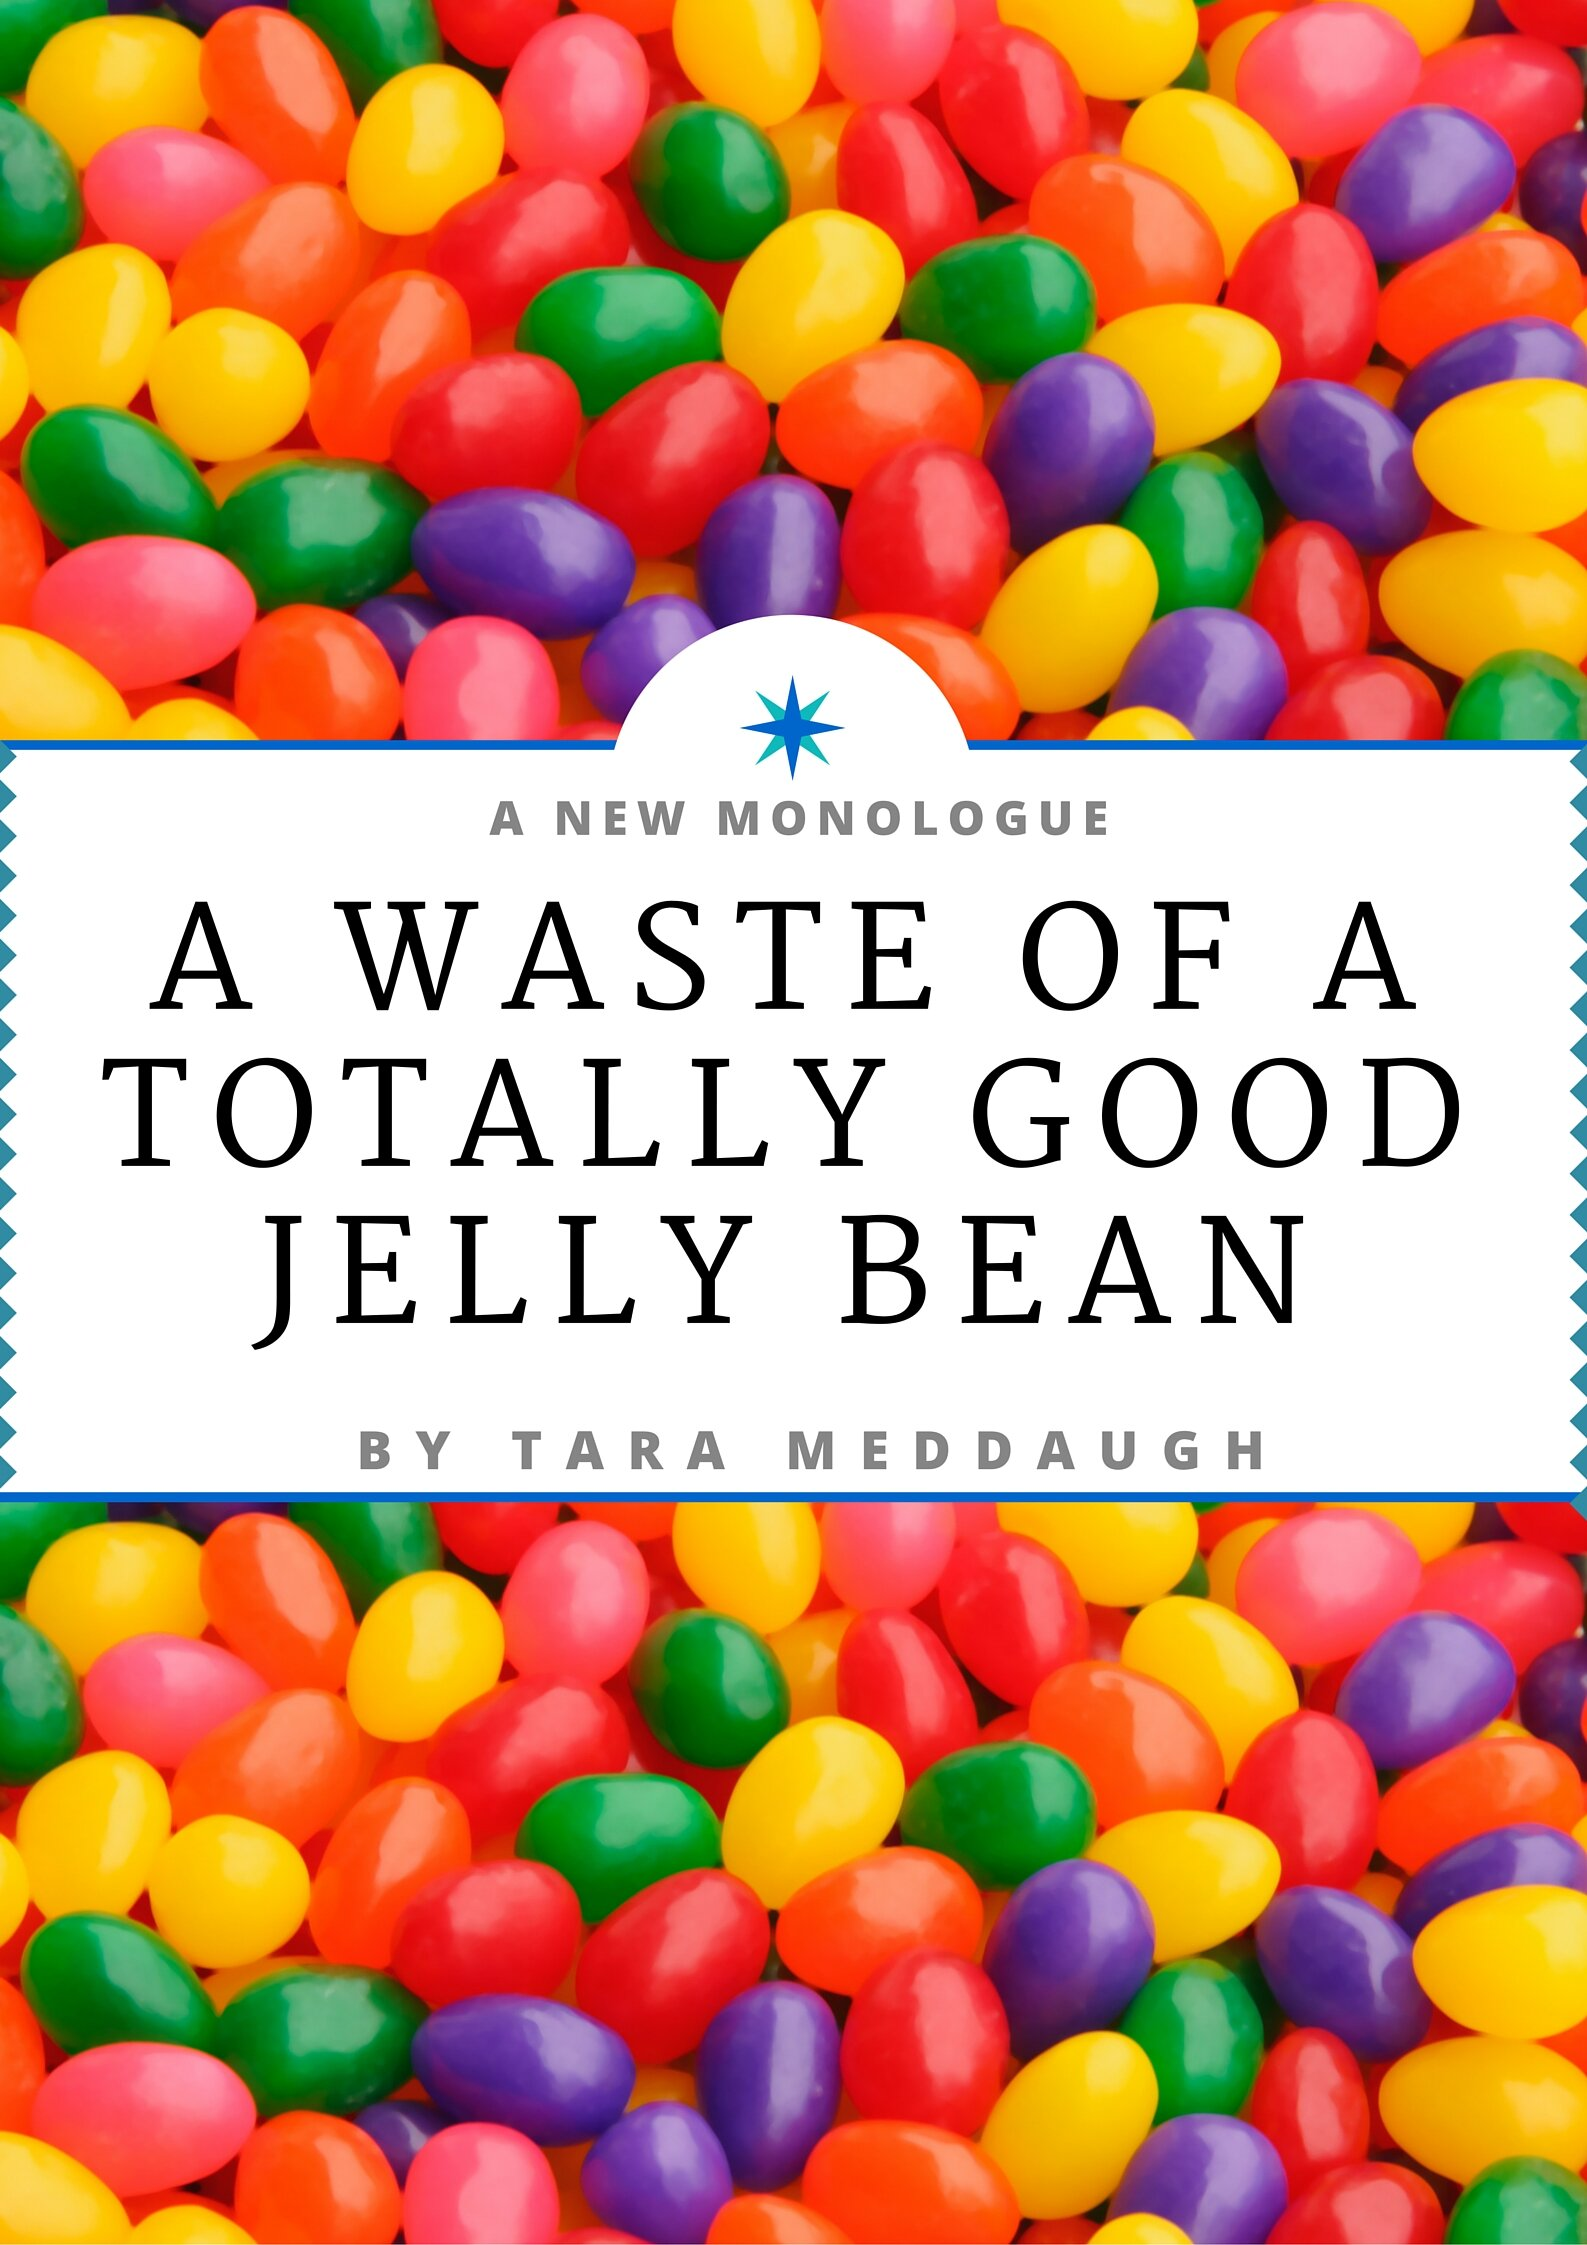 A Waste of a Totally Good Jelly Bean 2.jpg